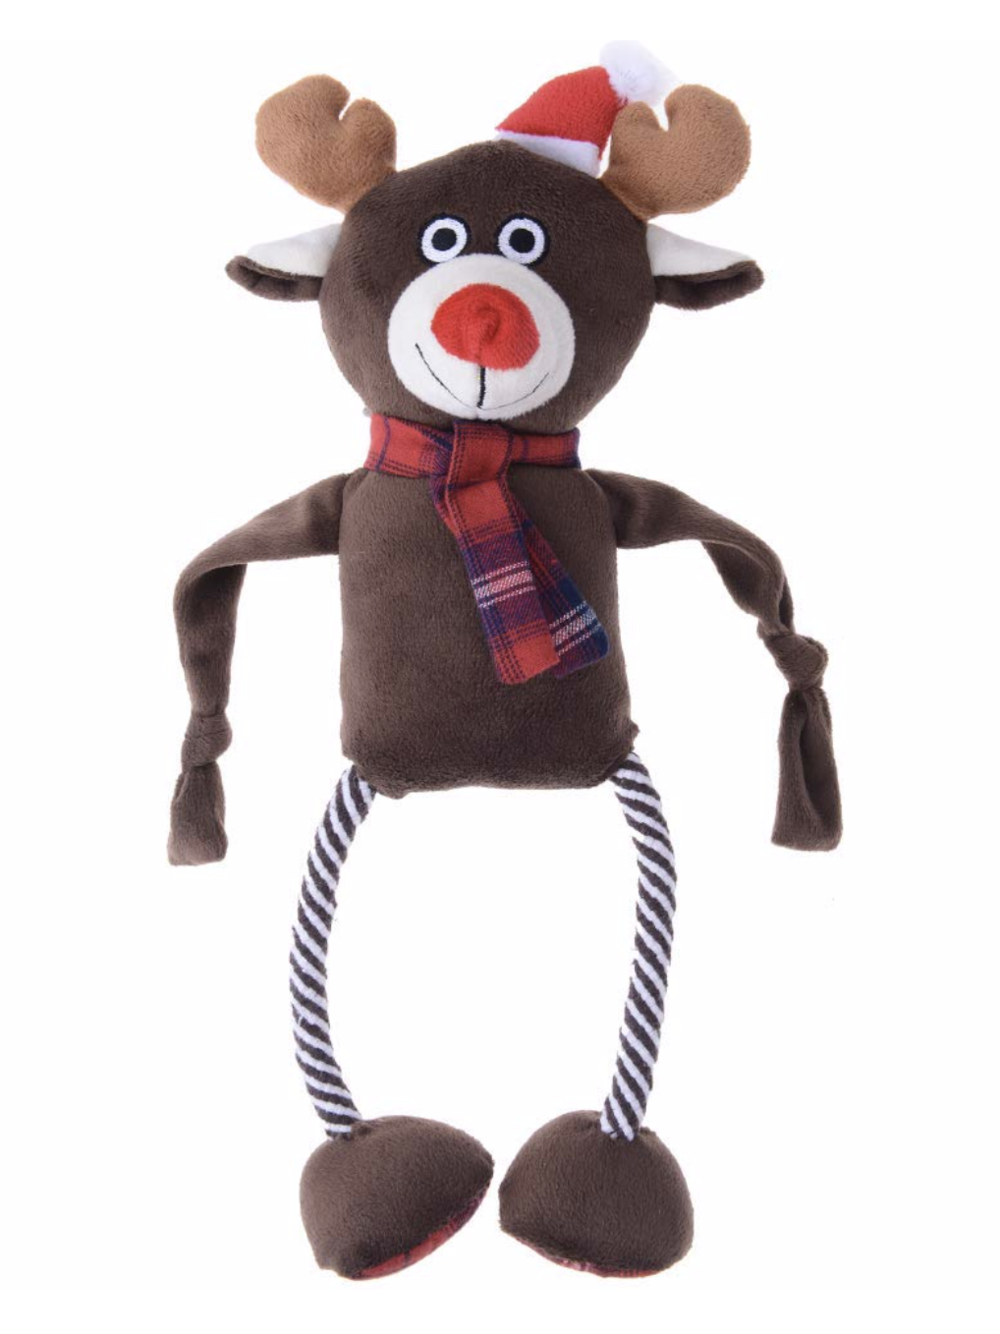 Reindeer Toy - We always seem to end up buying reindeer toys for my pups around Christmas time. I haven't heard any complaints from them yet!